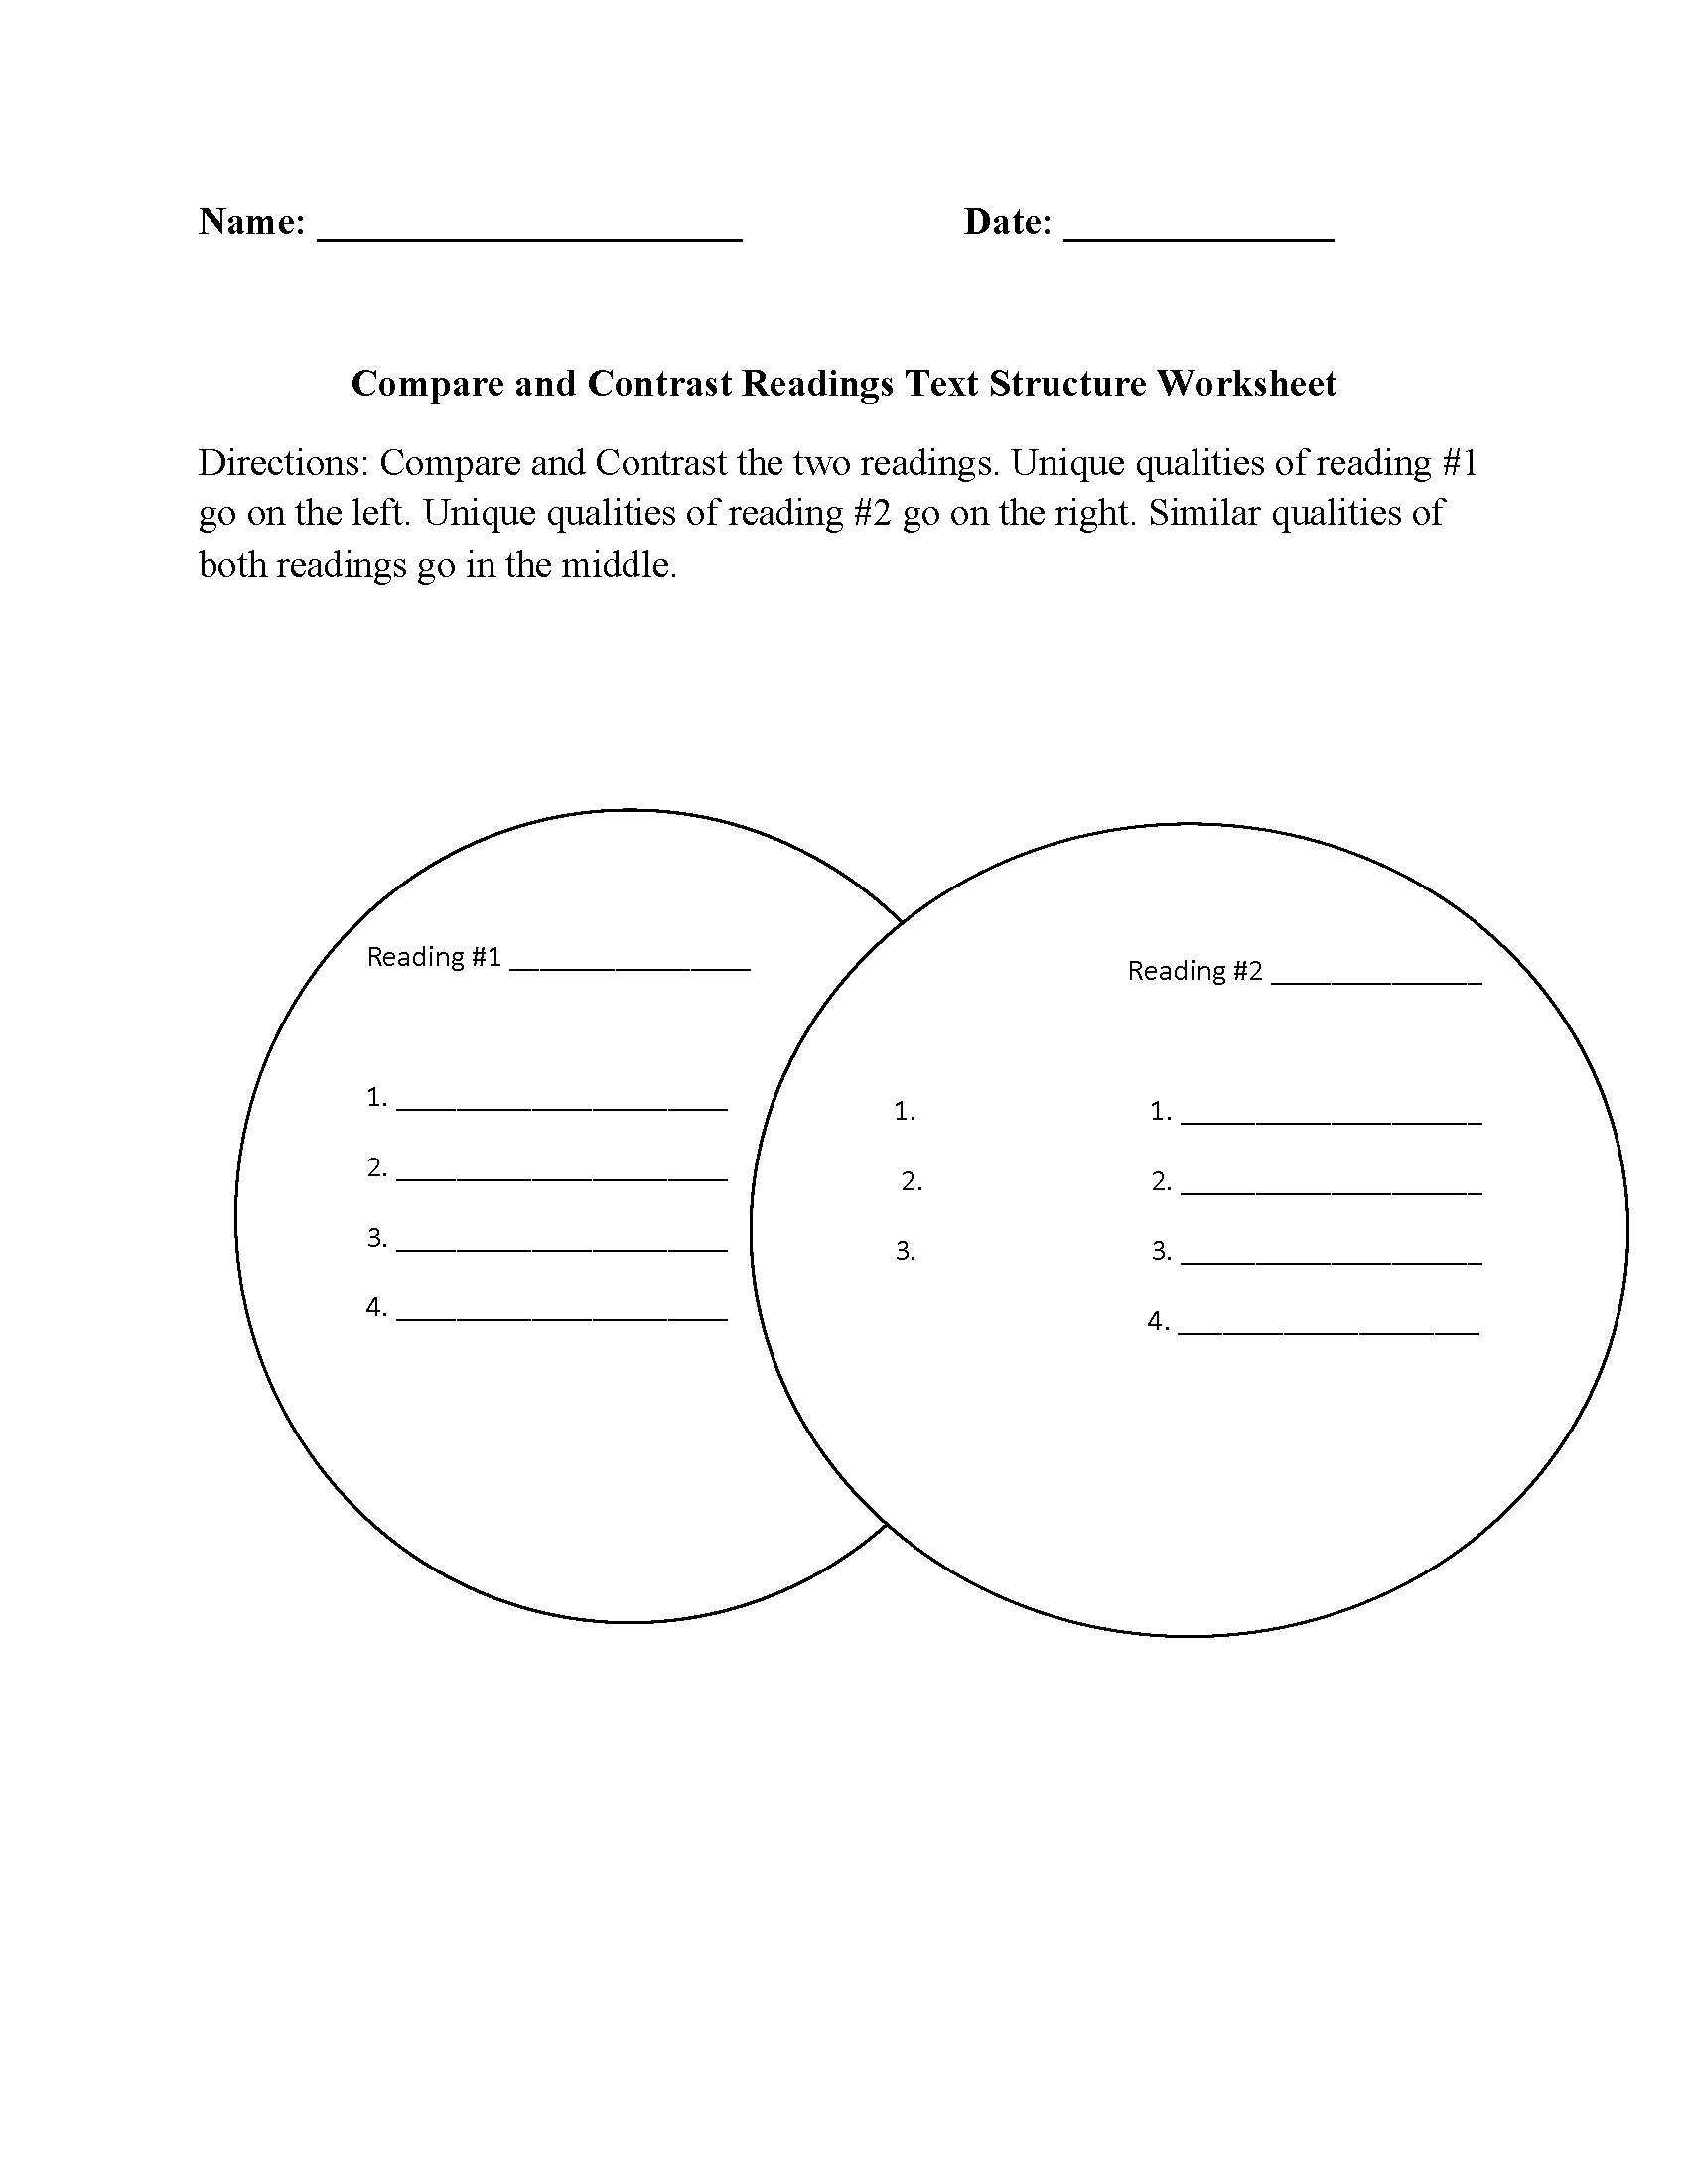 worksheet Compare And Contrast Worksheets 4th Grade compare and contrast readings text structure worksheets worksheets